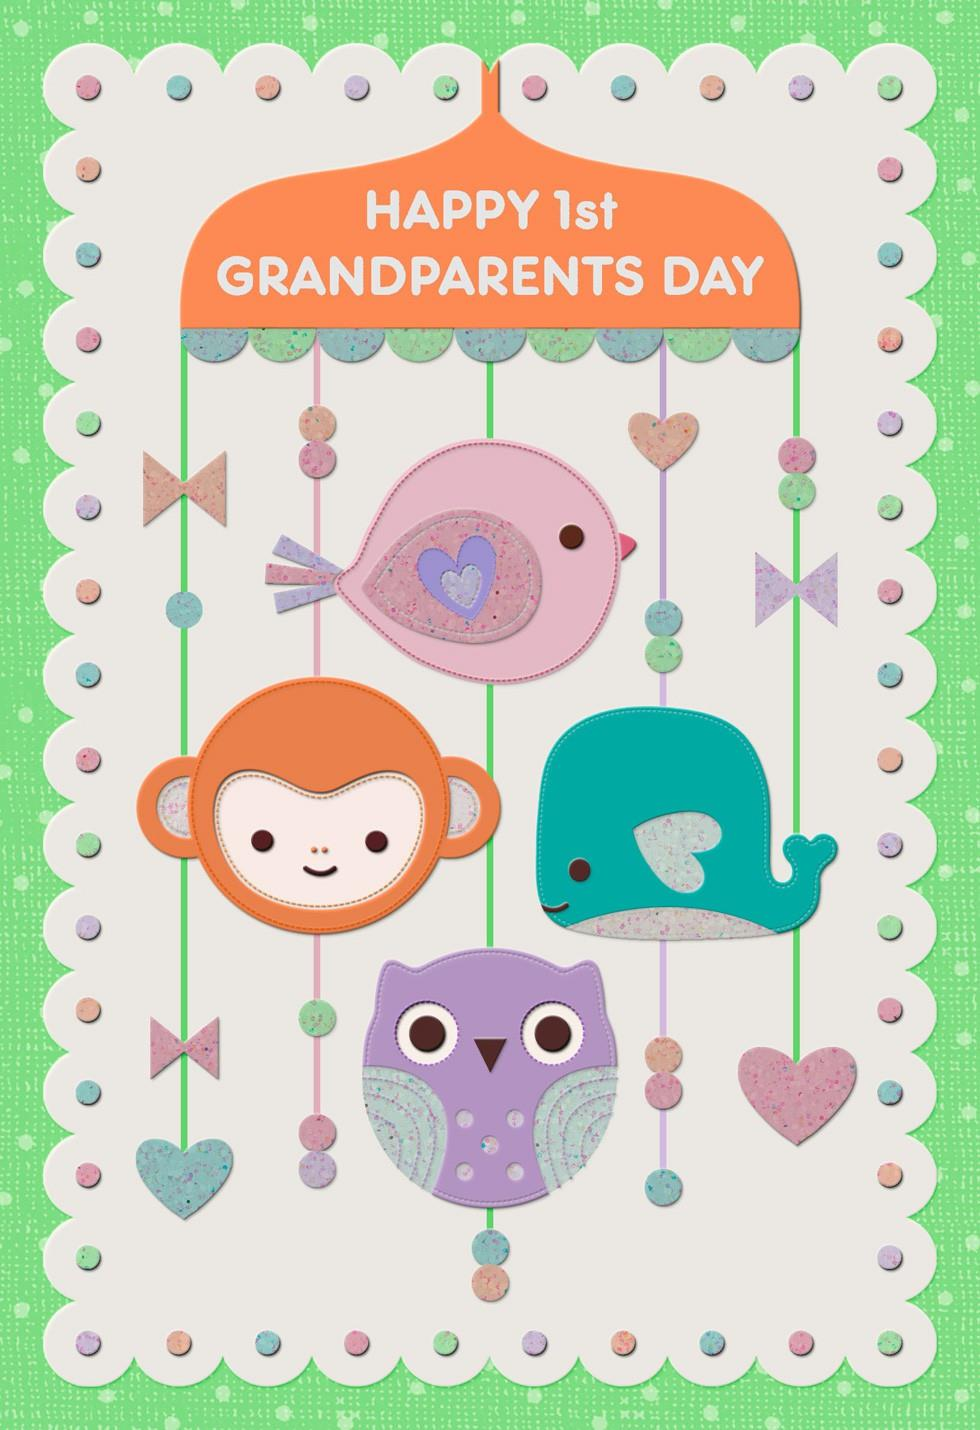 Baby mobile grandparents day card from new grandbaby greeting baby mobile grandparents day card from new grandbaby kristyandbryce Choice Image